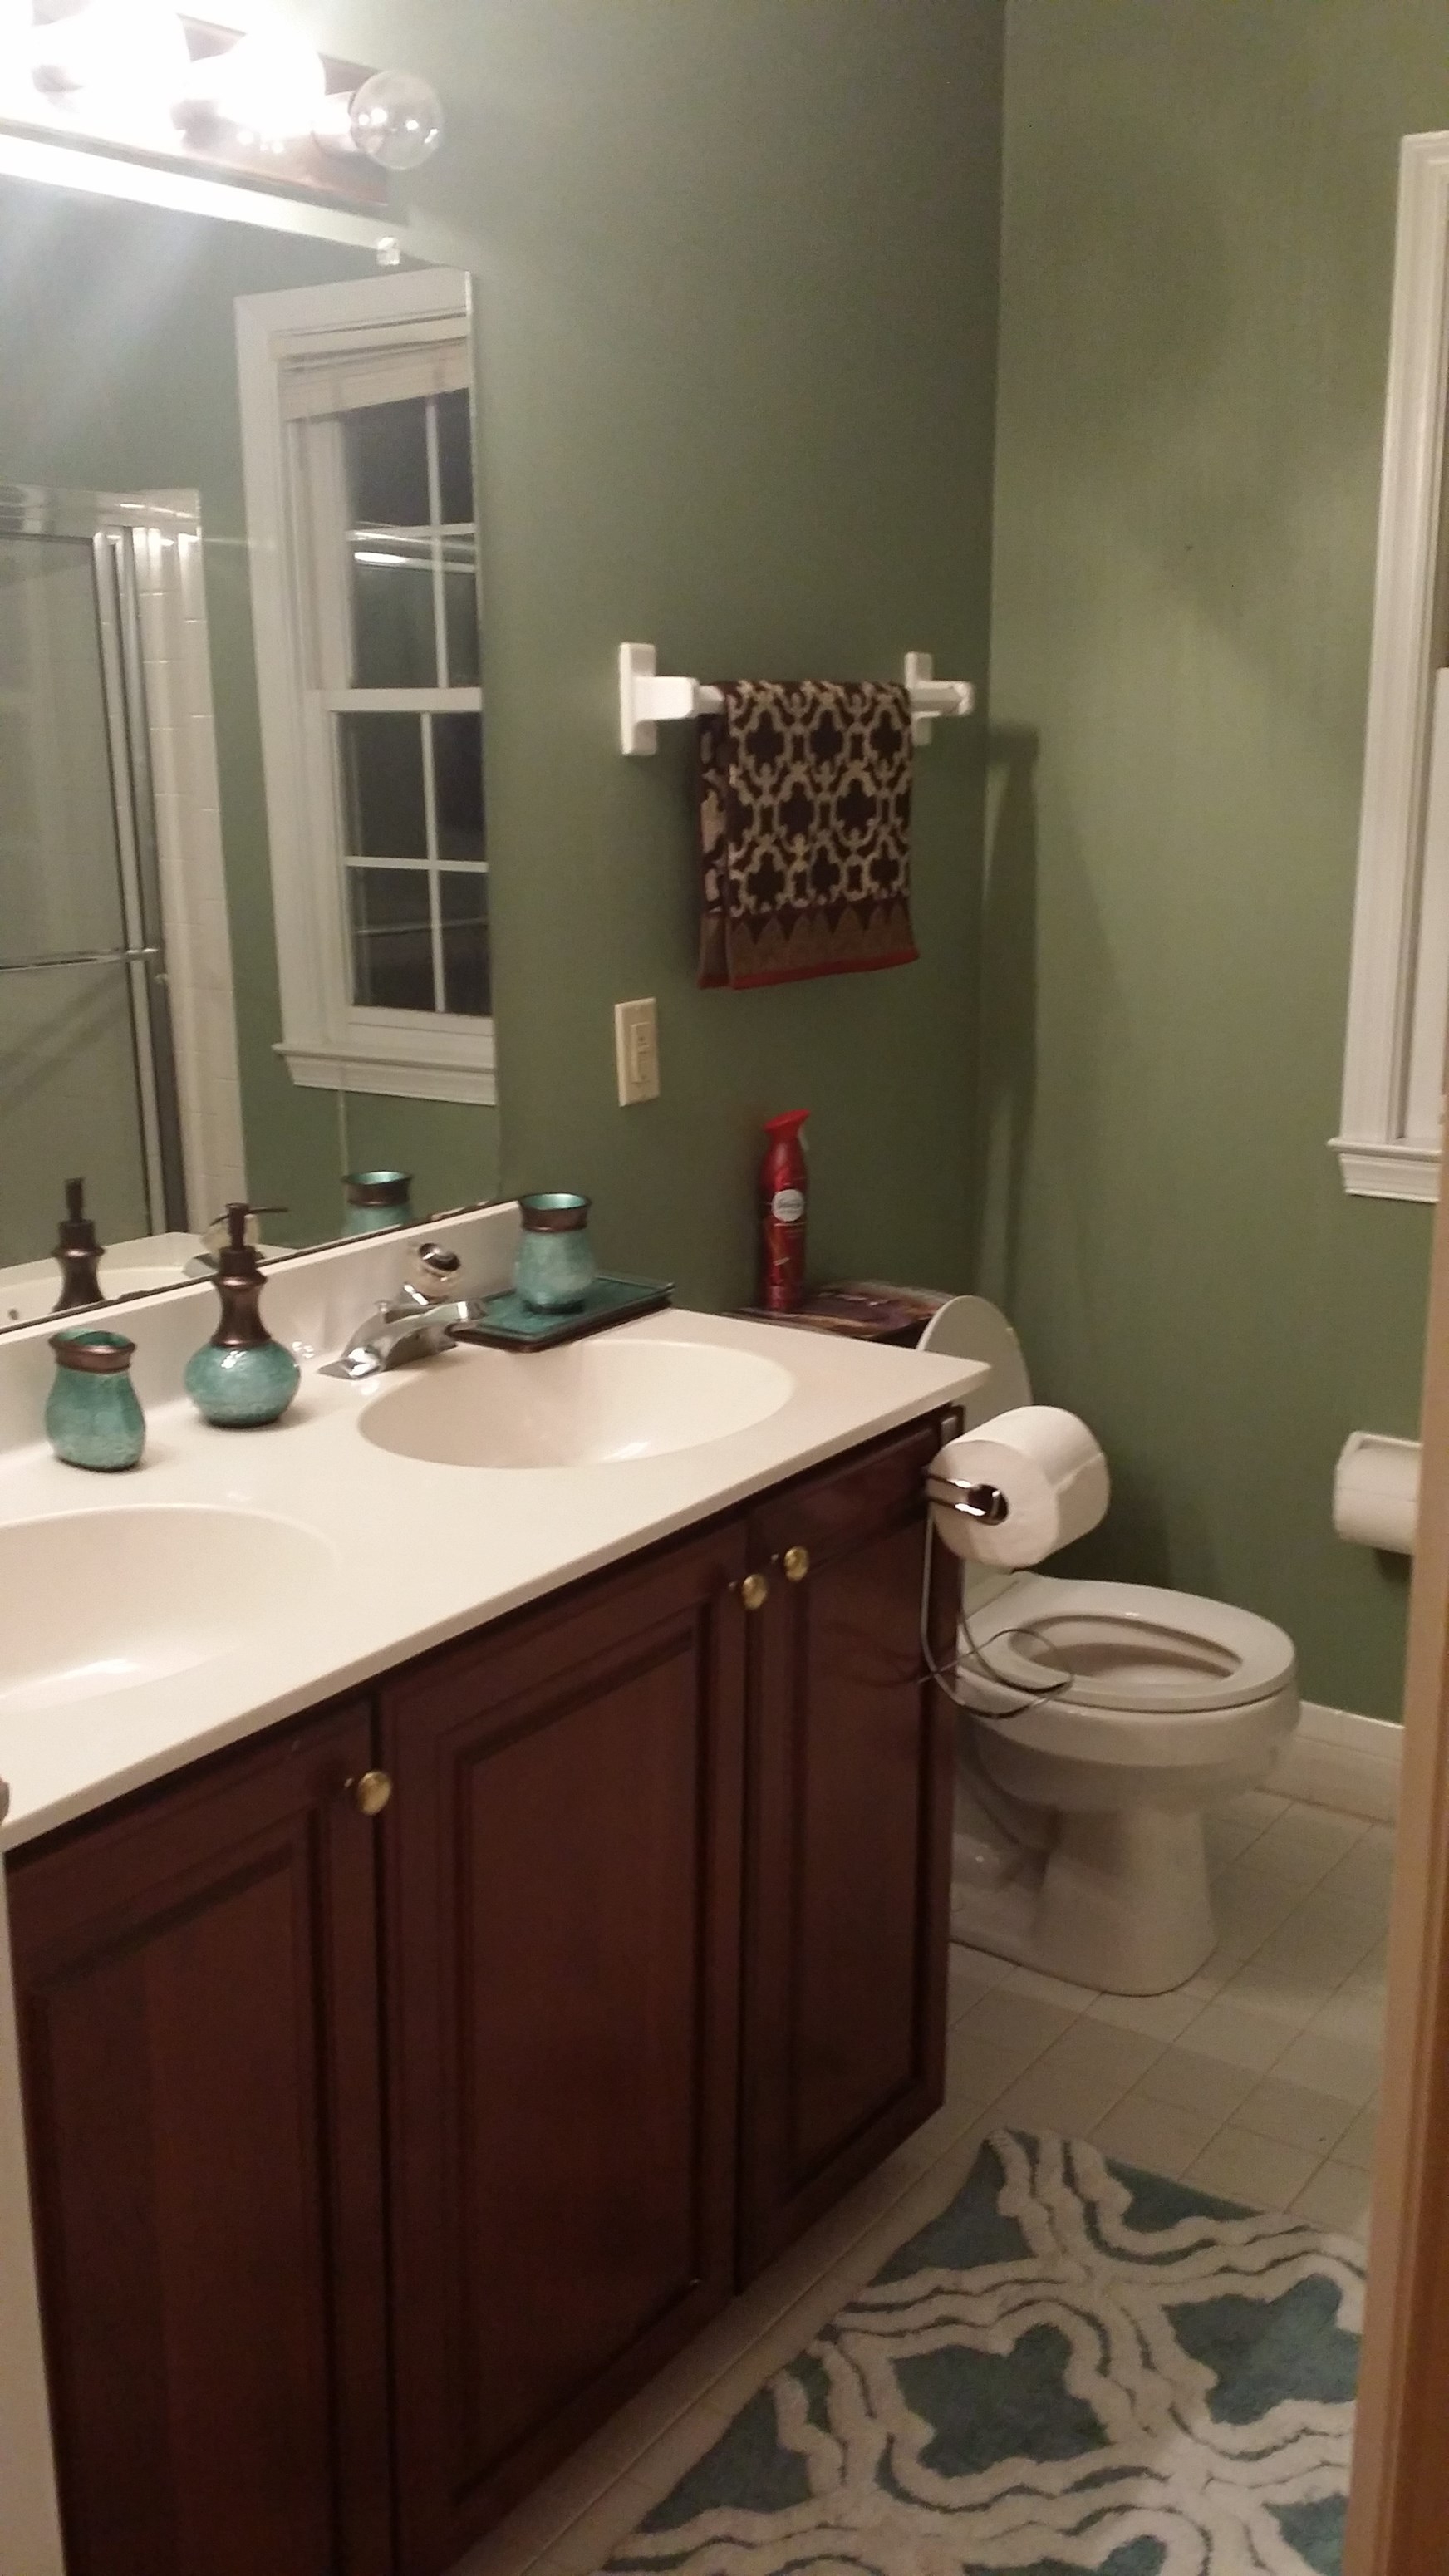 FULLY FURNISHED ROOM 4 RENT $575. Close To Most IT Companies ...